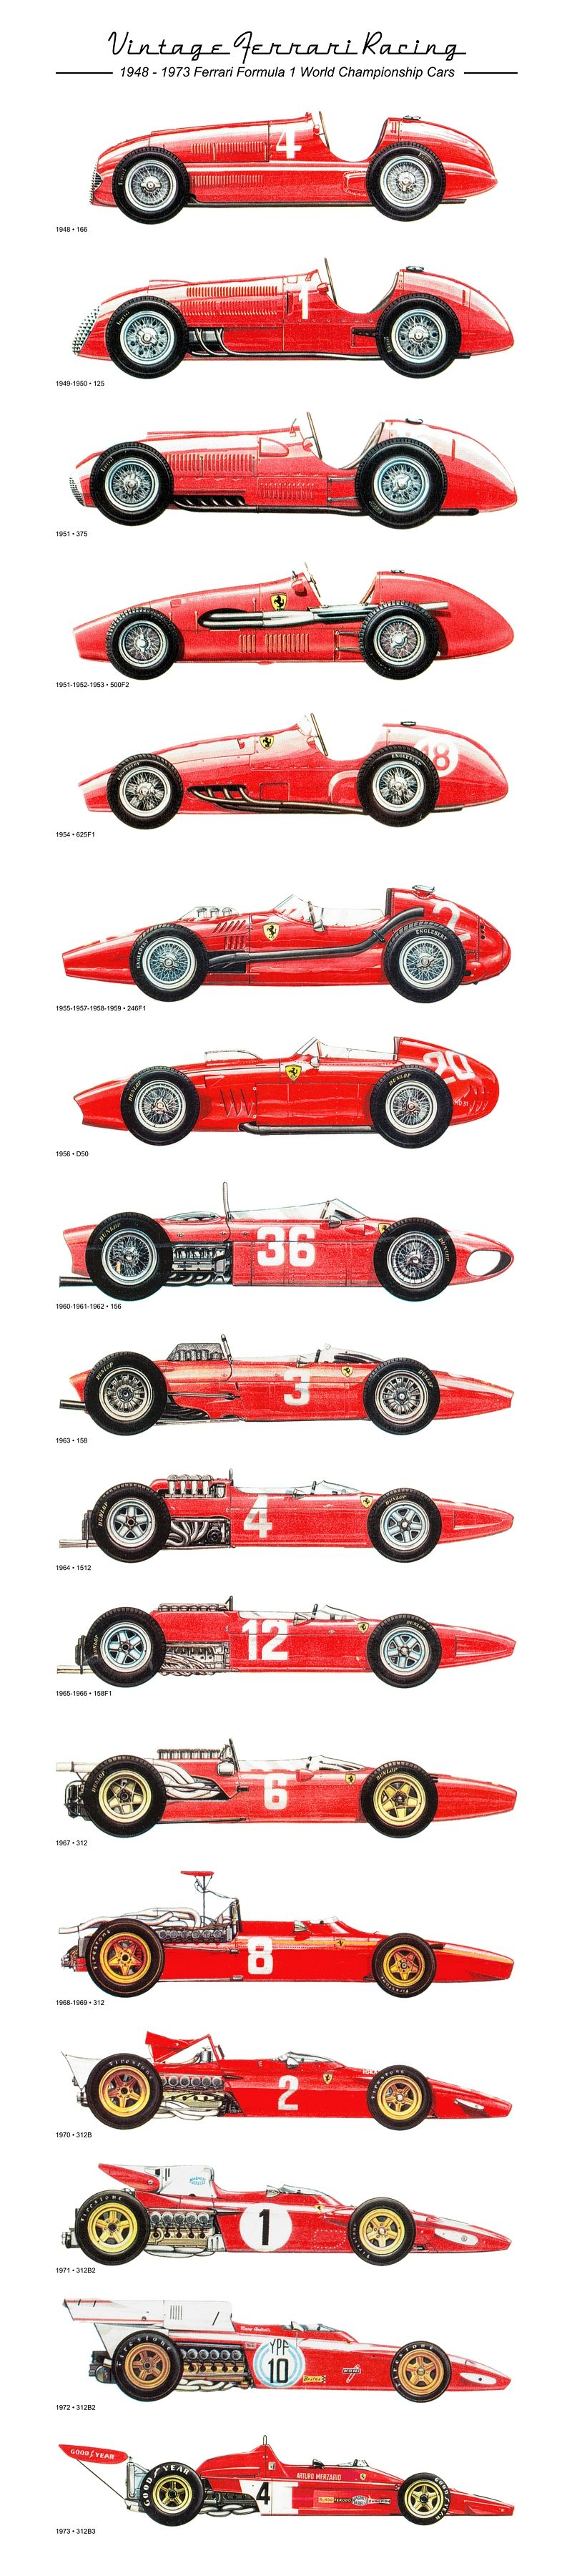 Cars silver racer poster 2 - Vintage Ferrari Racing Poster Beautiful Small Multiple Set Up That Allows Detailed Comparisons